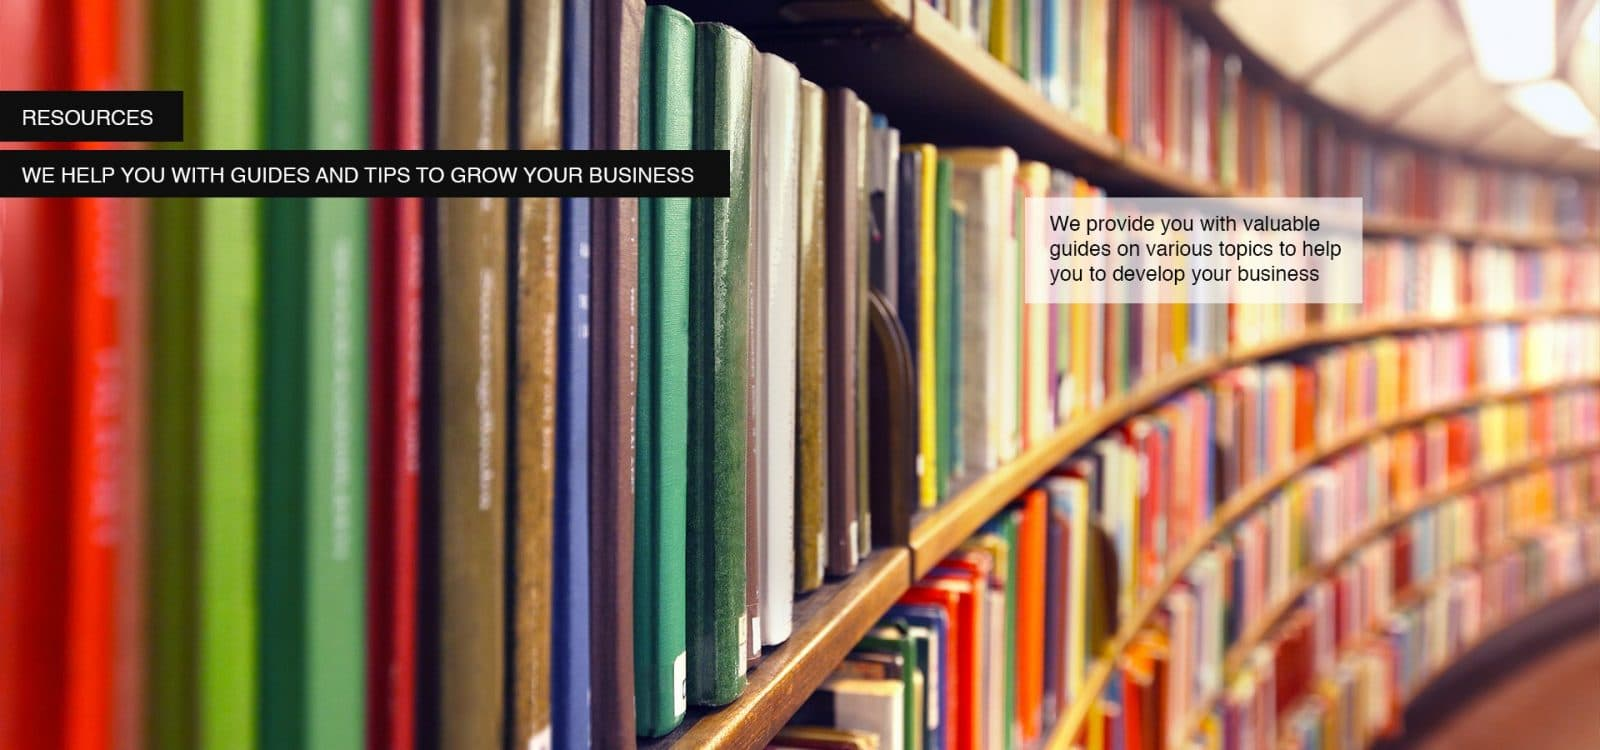 business resources - row of books